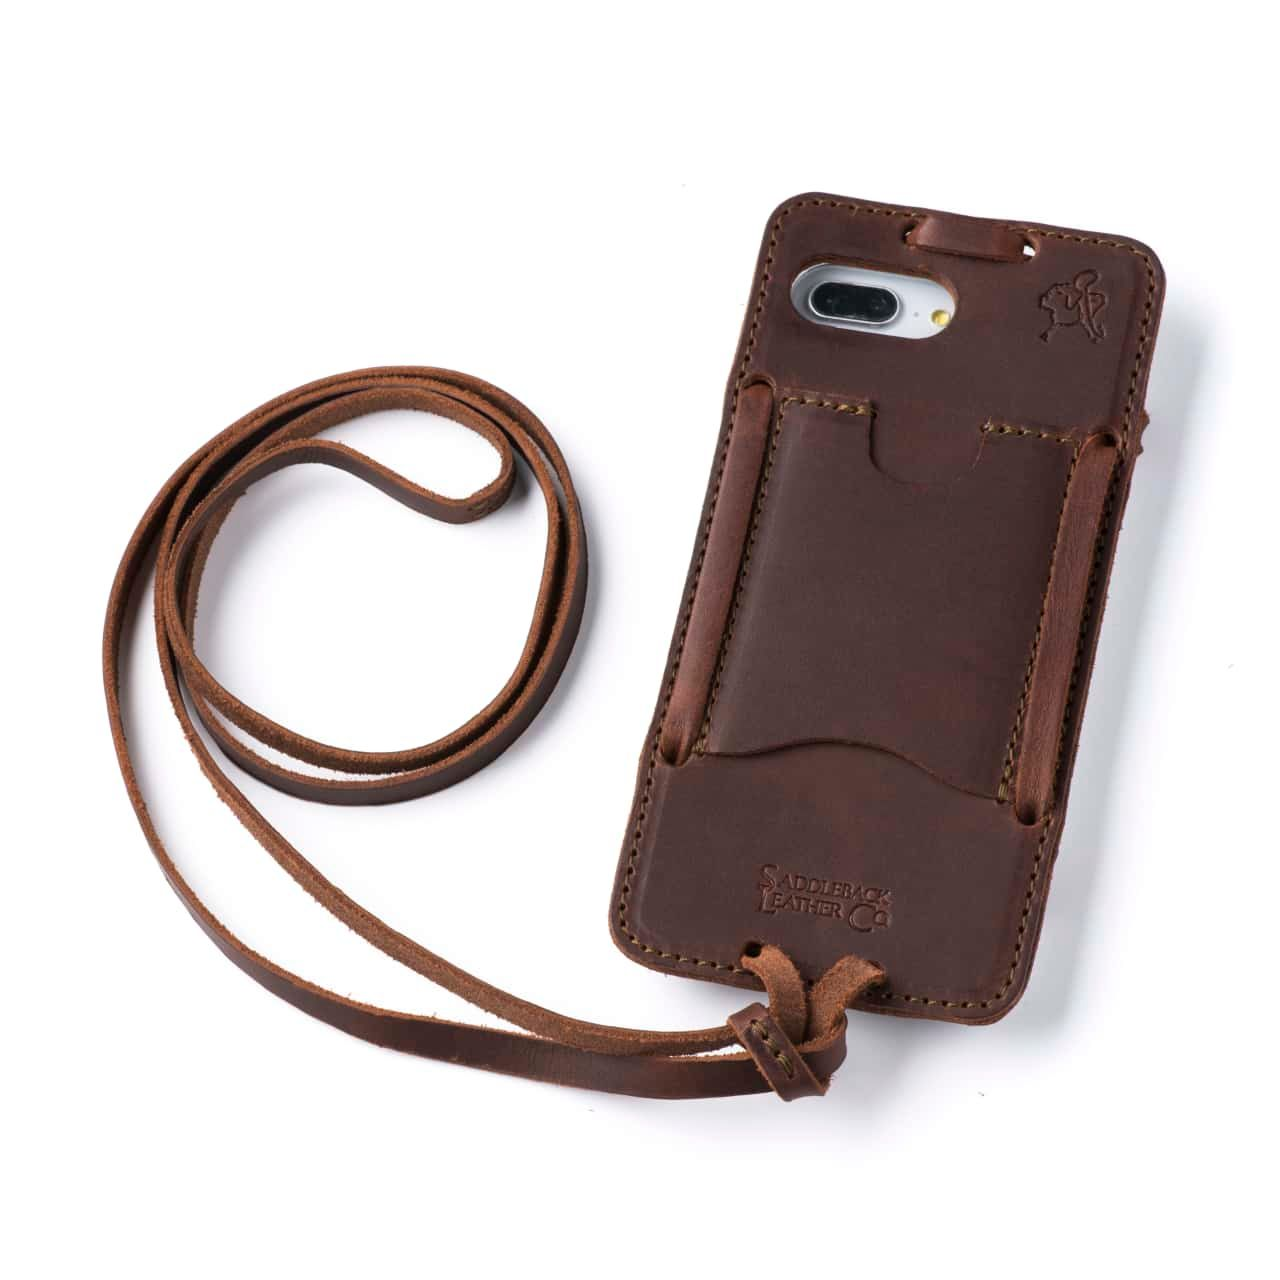 Leather iPhone 8+ Case in Color Chestnut with the Lanyard attached back angle showing empty card slot